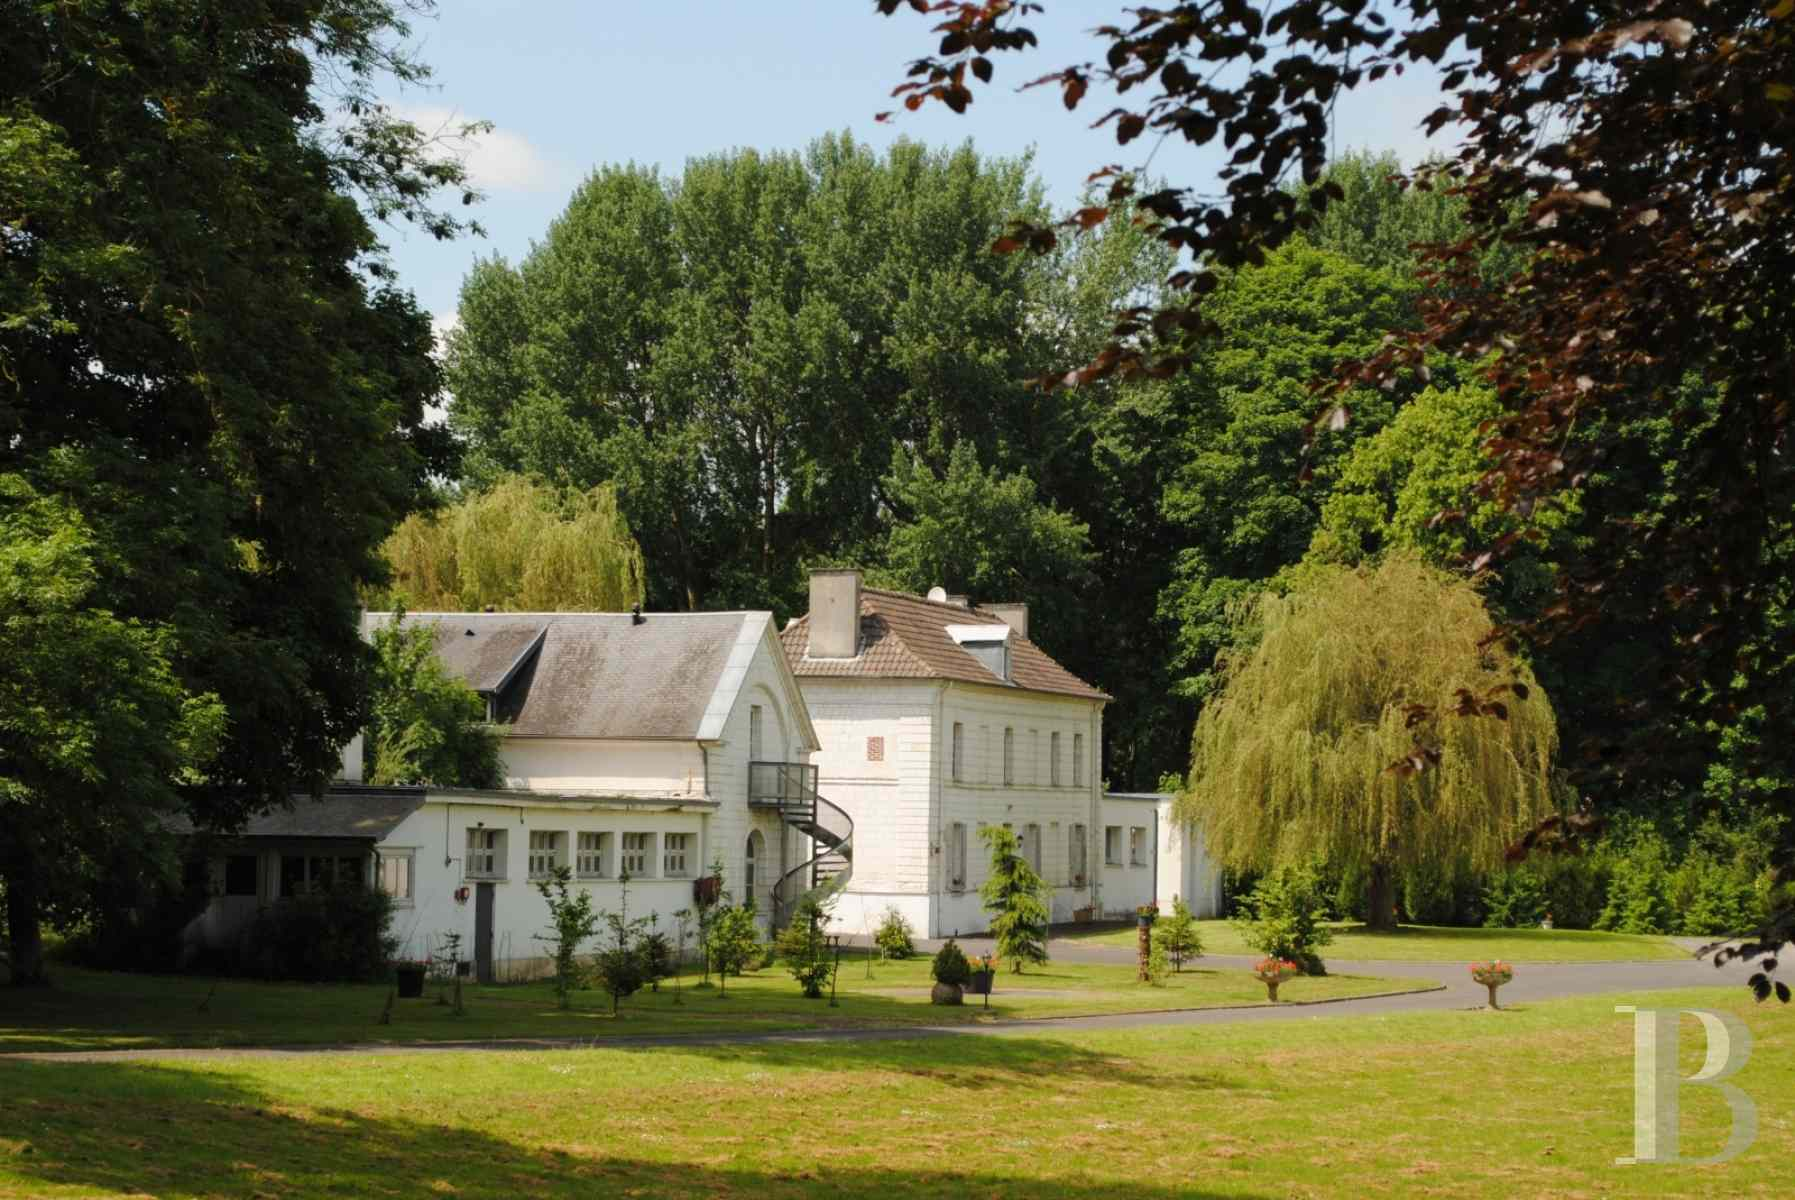 chateaux for sale France picardy 19th century - 14 zoom